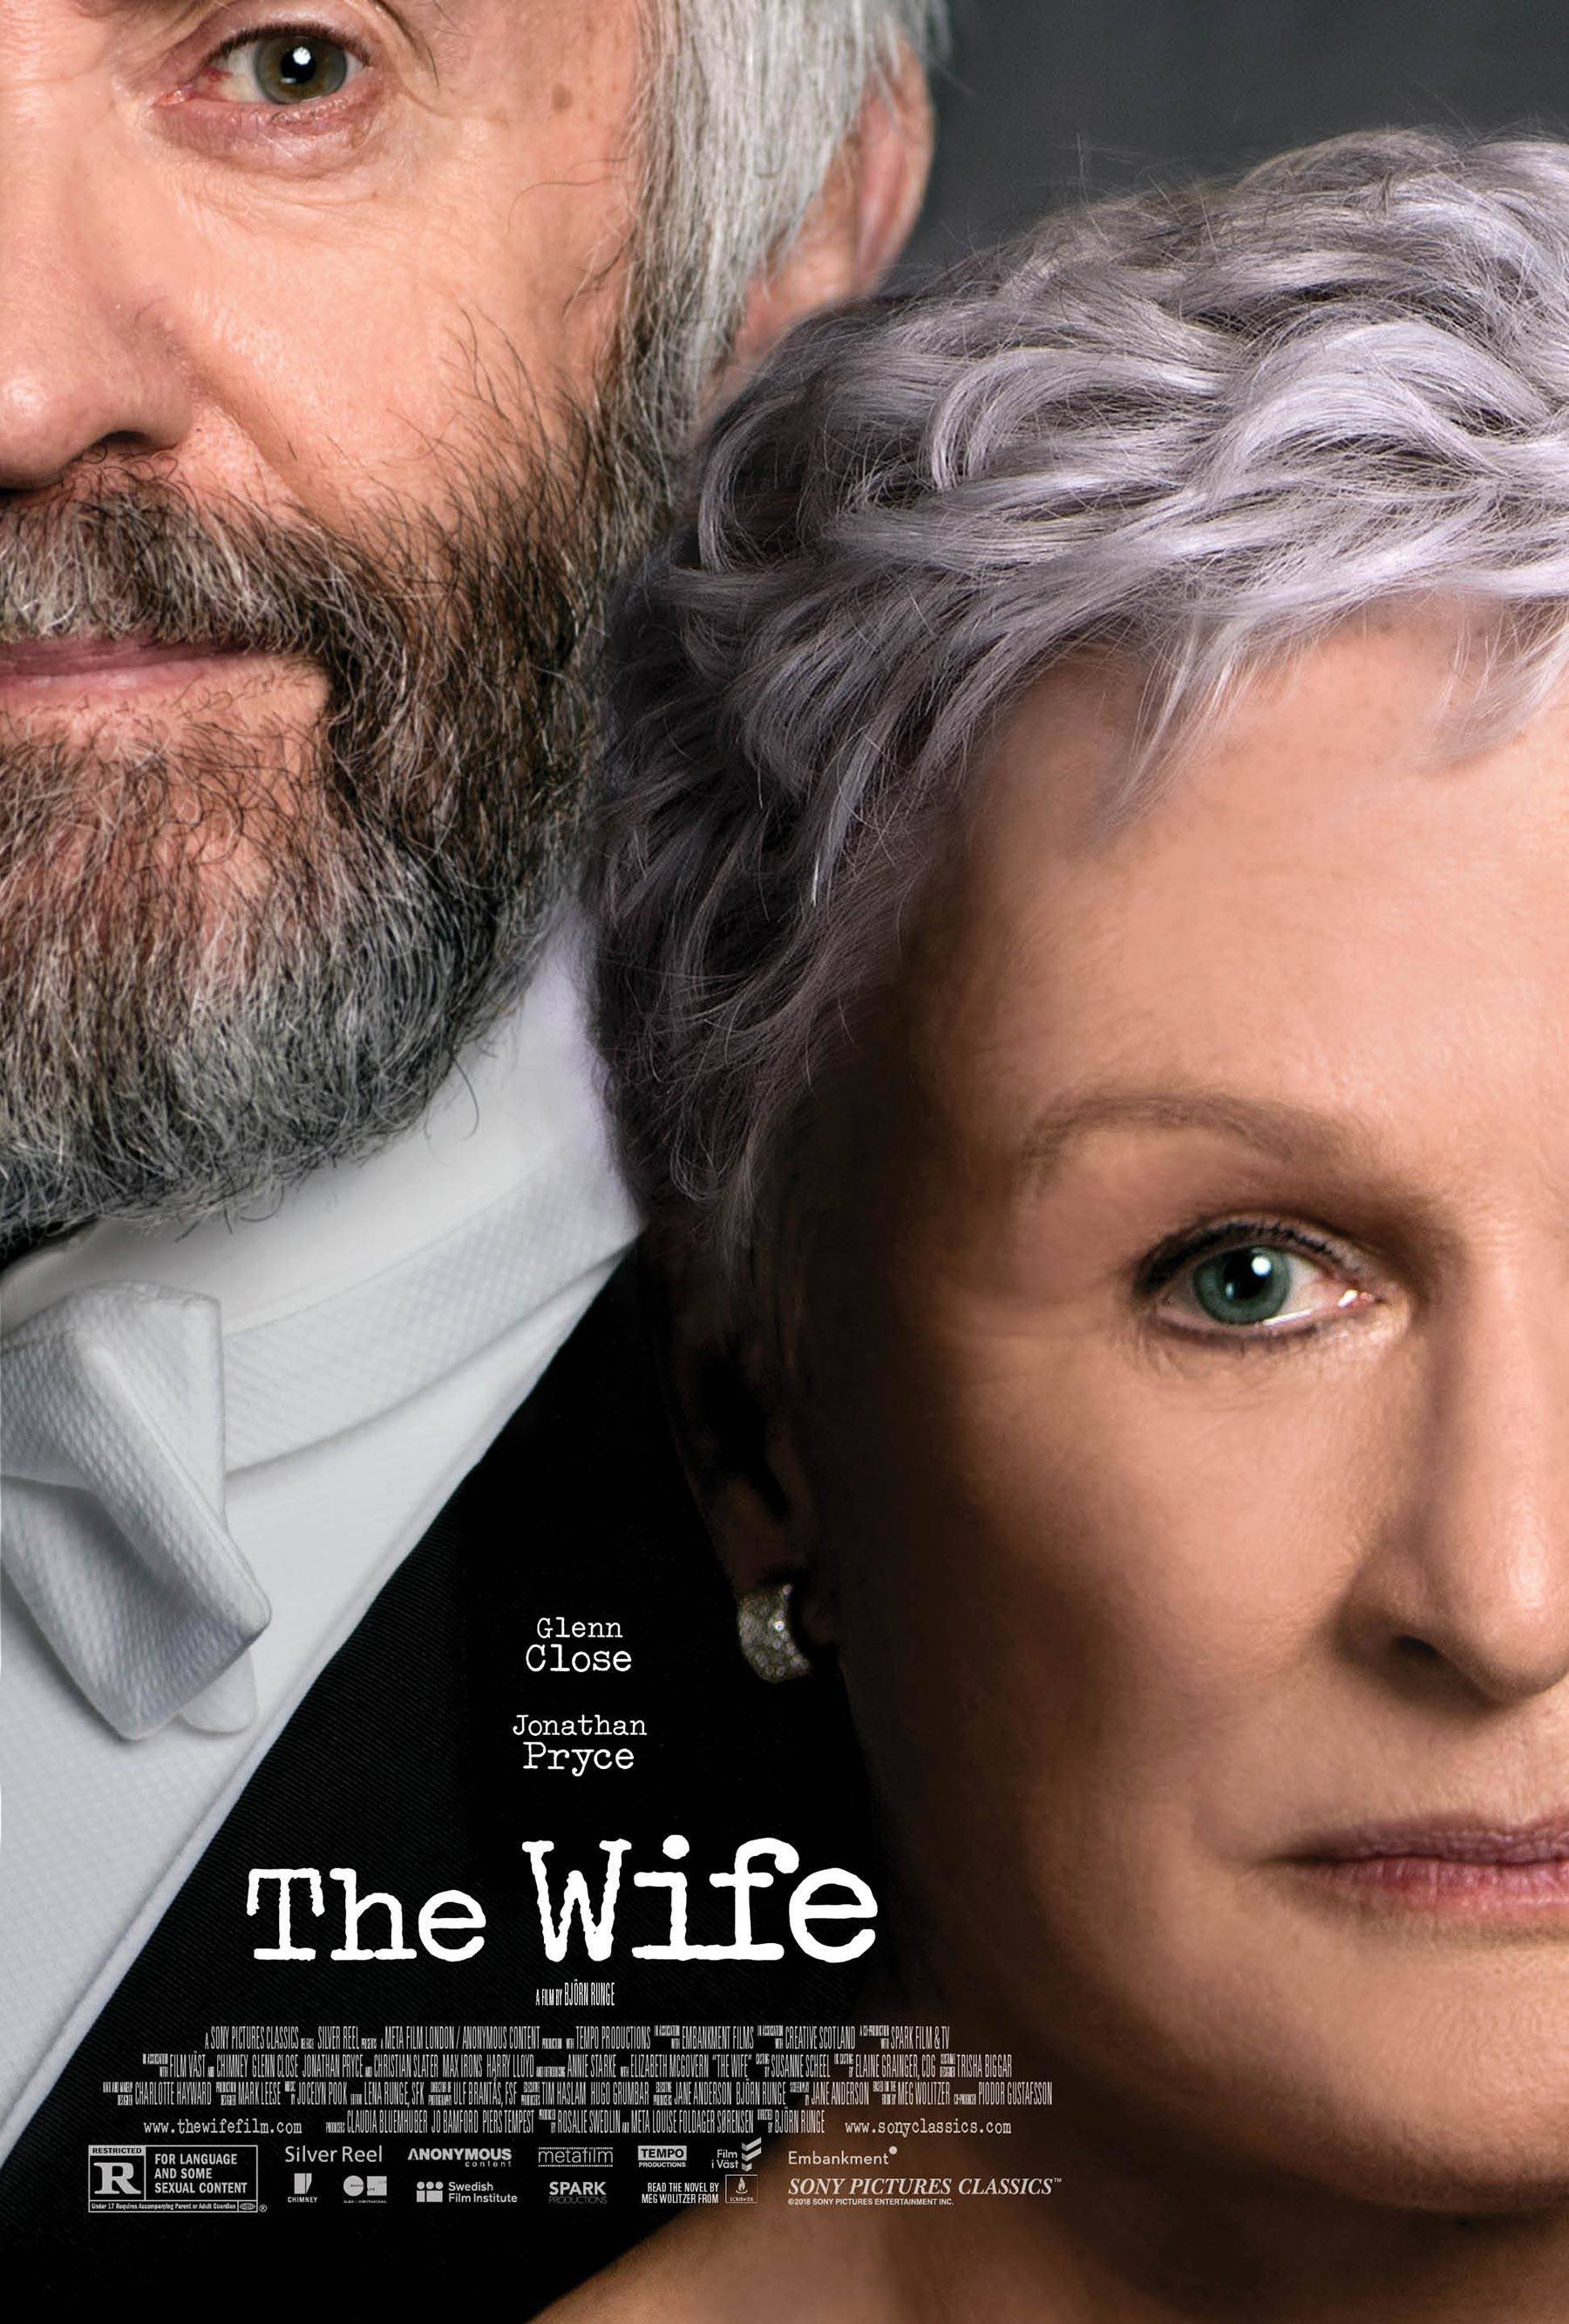 the wife – tempo productions official homepage